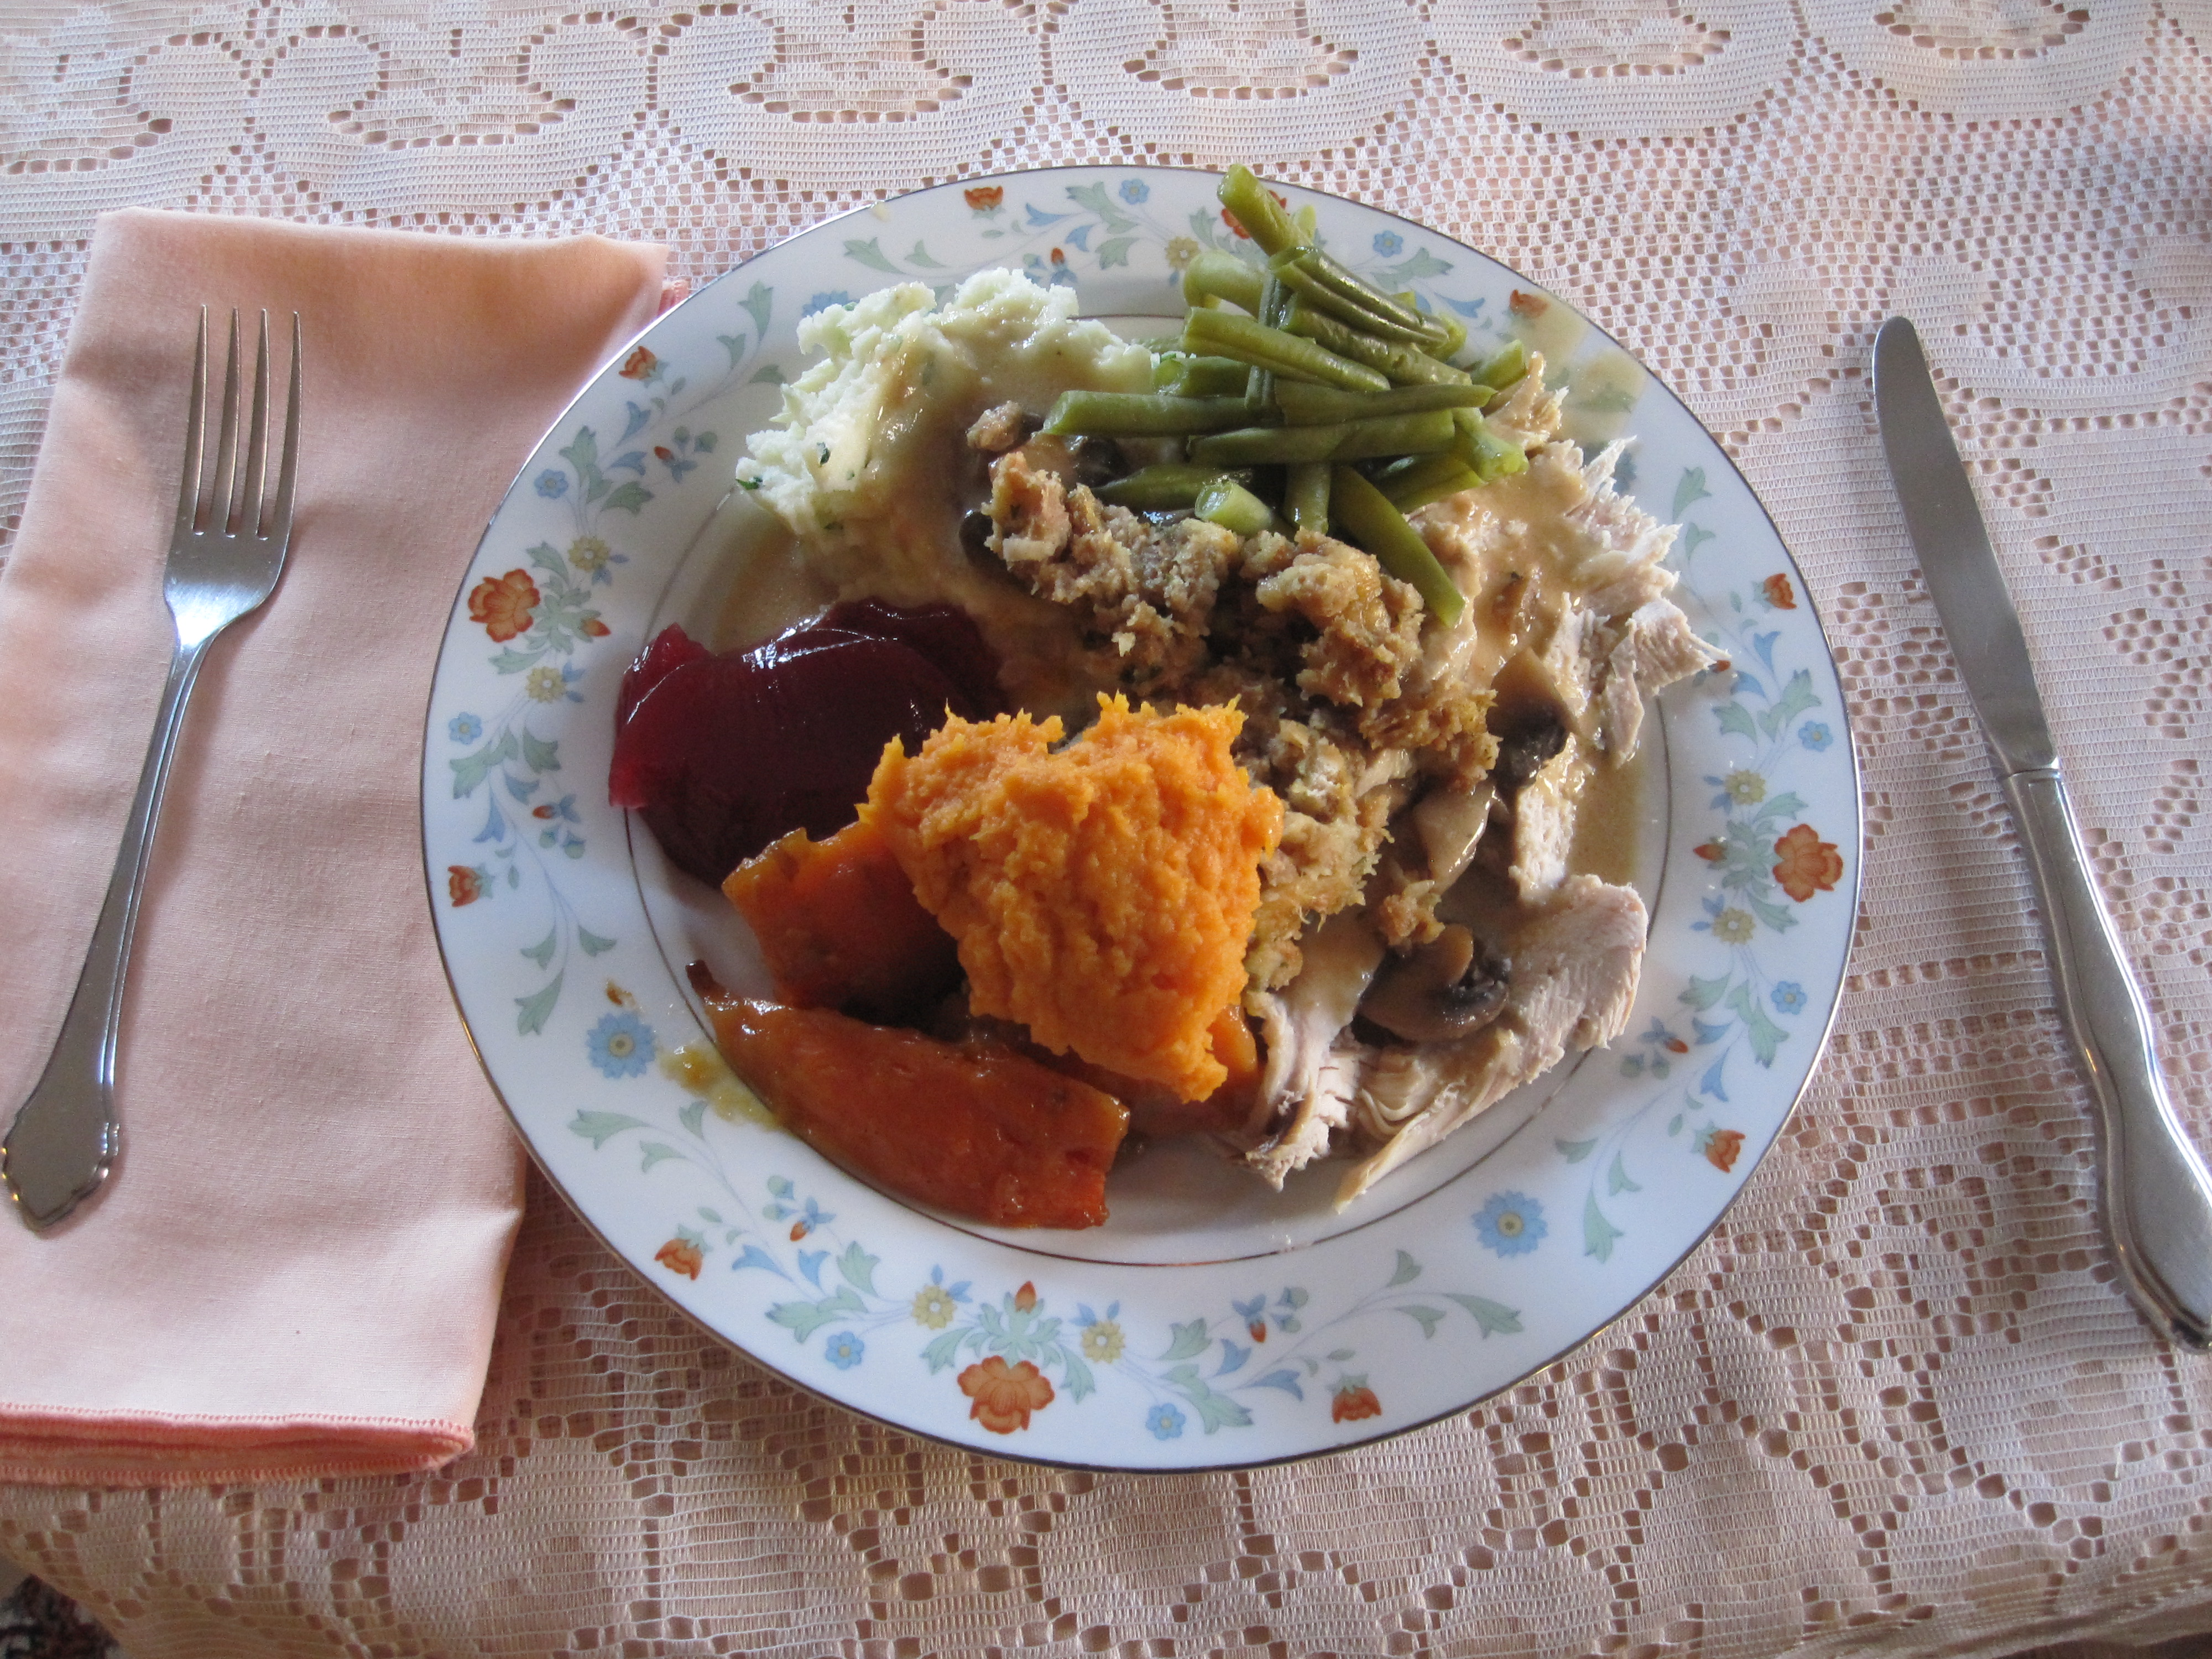 My Thanksgiving Plate!